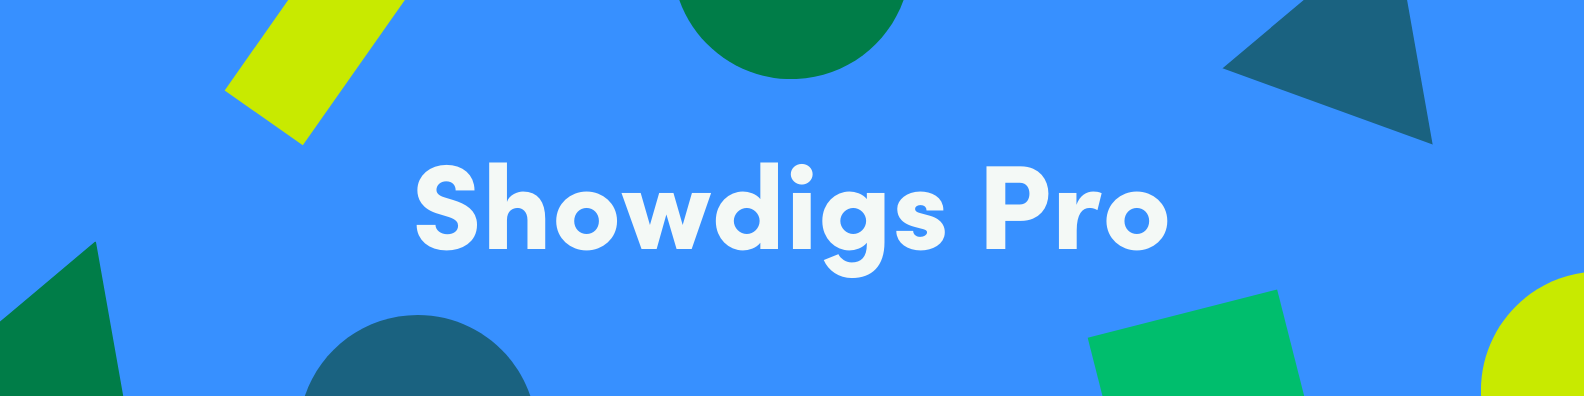 showdigs premium scheduling service for property managers